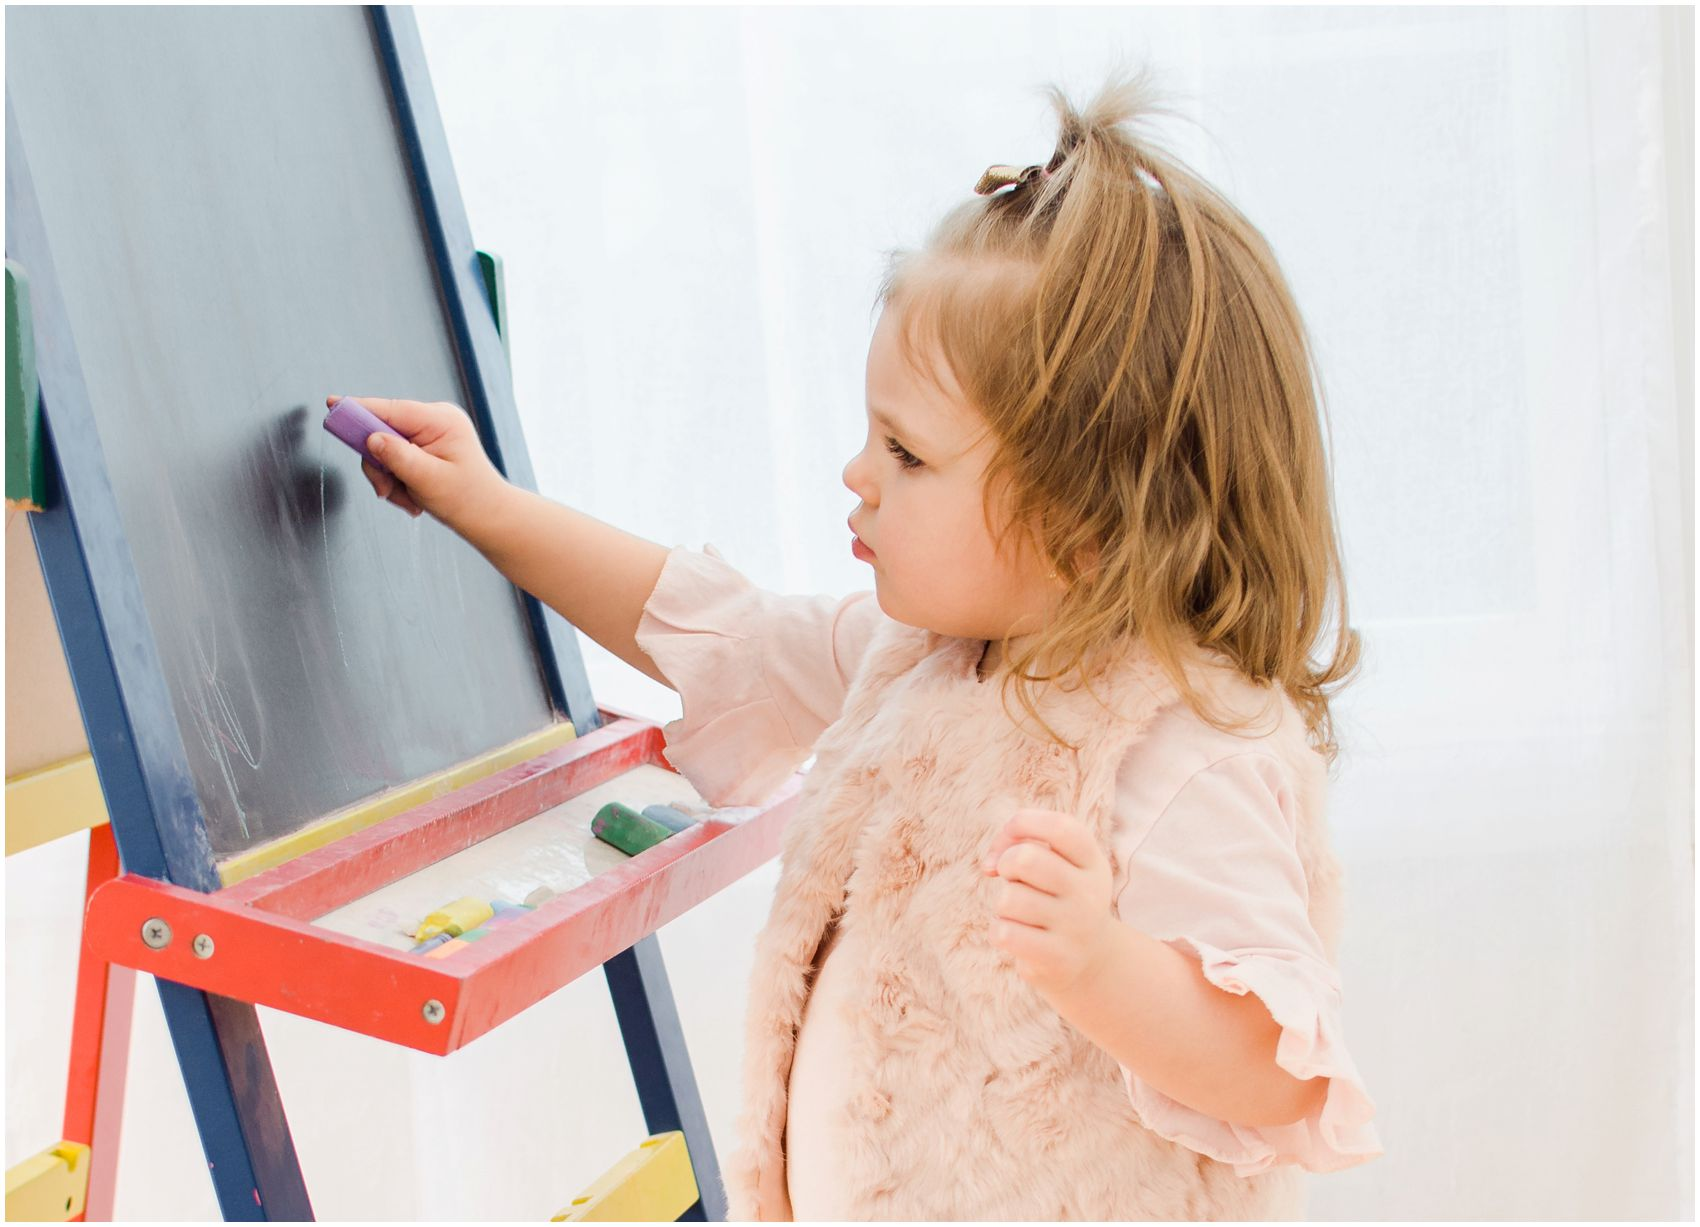 little girl with a ponytail drawing on the easel board